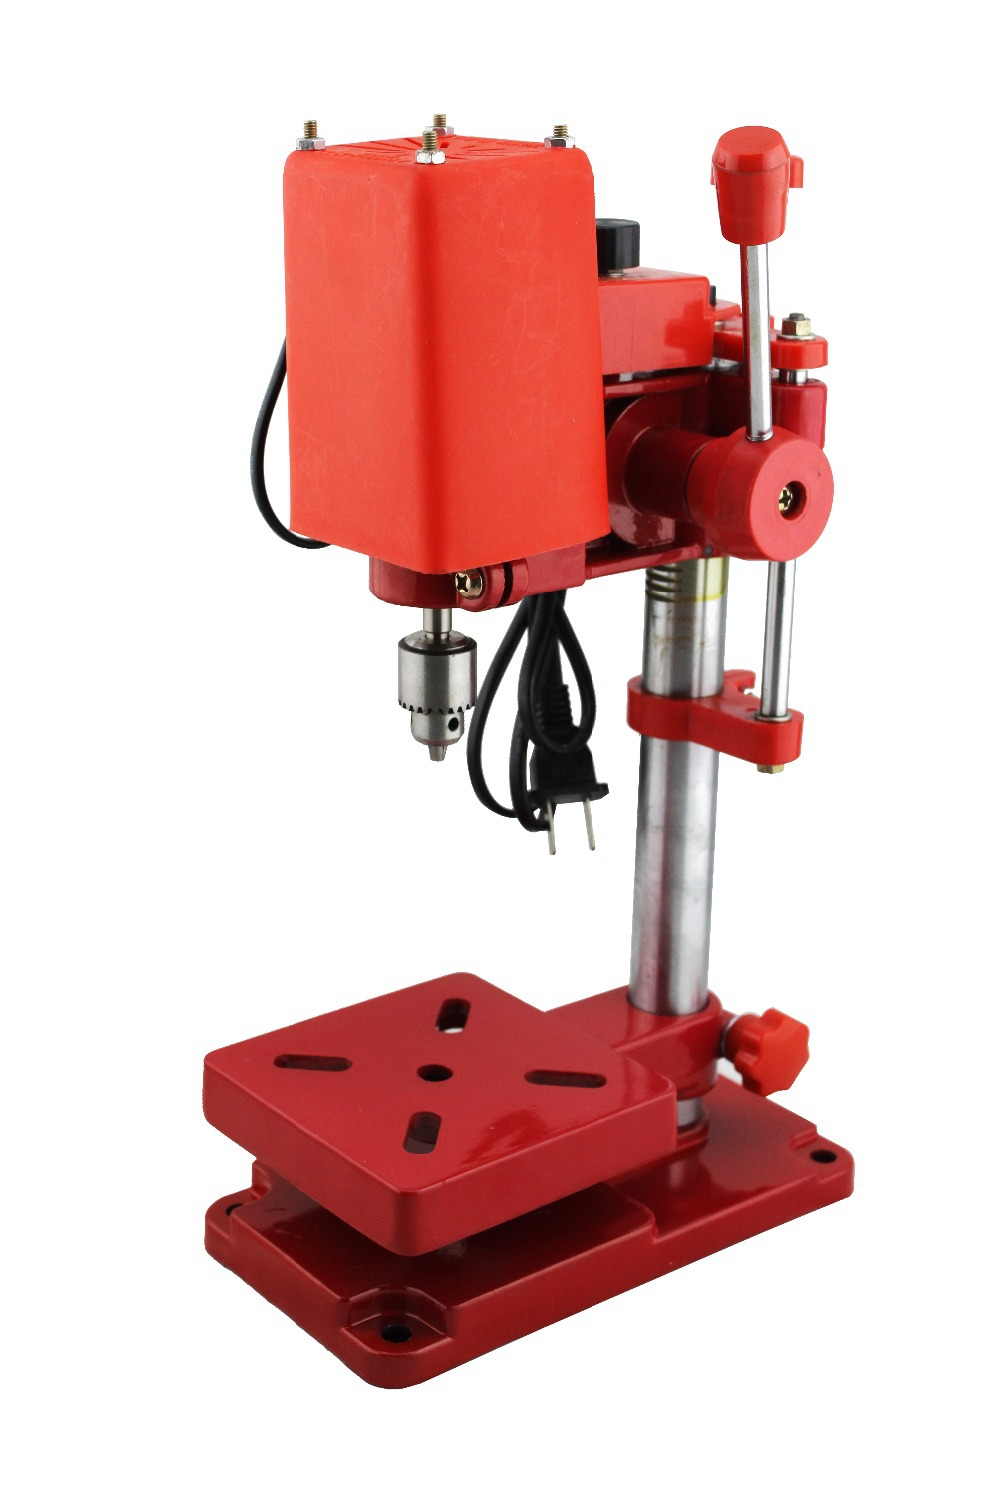 Фотография Special Micro Drill High Precision Vertical Drilling Machine Digital Controlled Drill,Driller,Press Miller